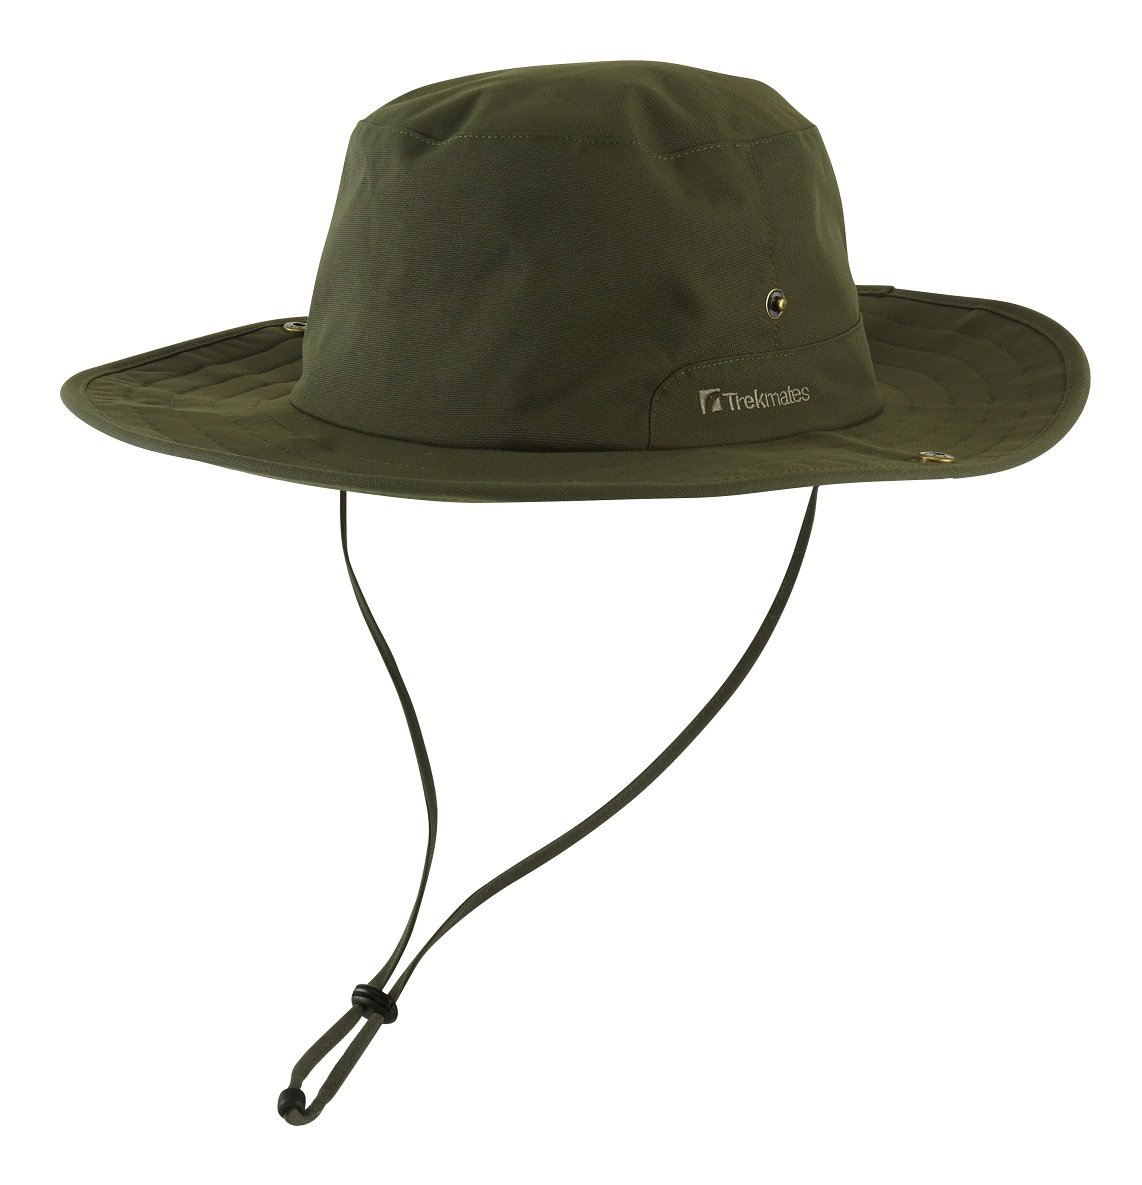 2ac0b1c2eb1 Trekmates Expedition Gore-Tex Walking Travel Hat (2018) - Forest Green